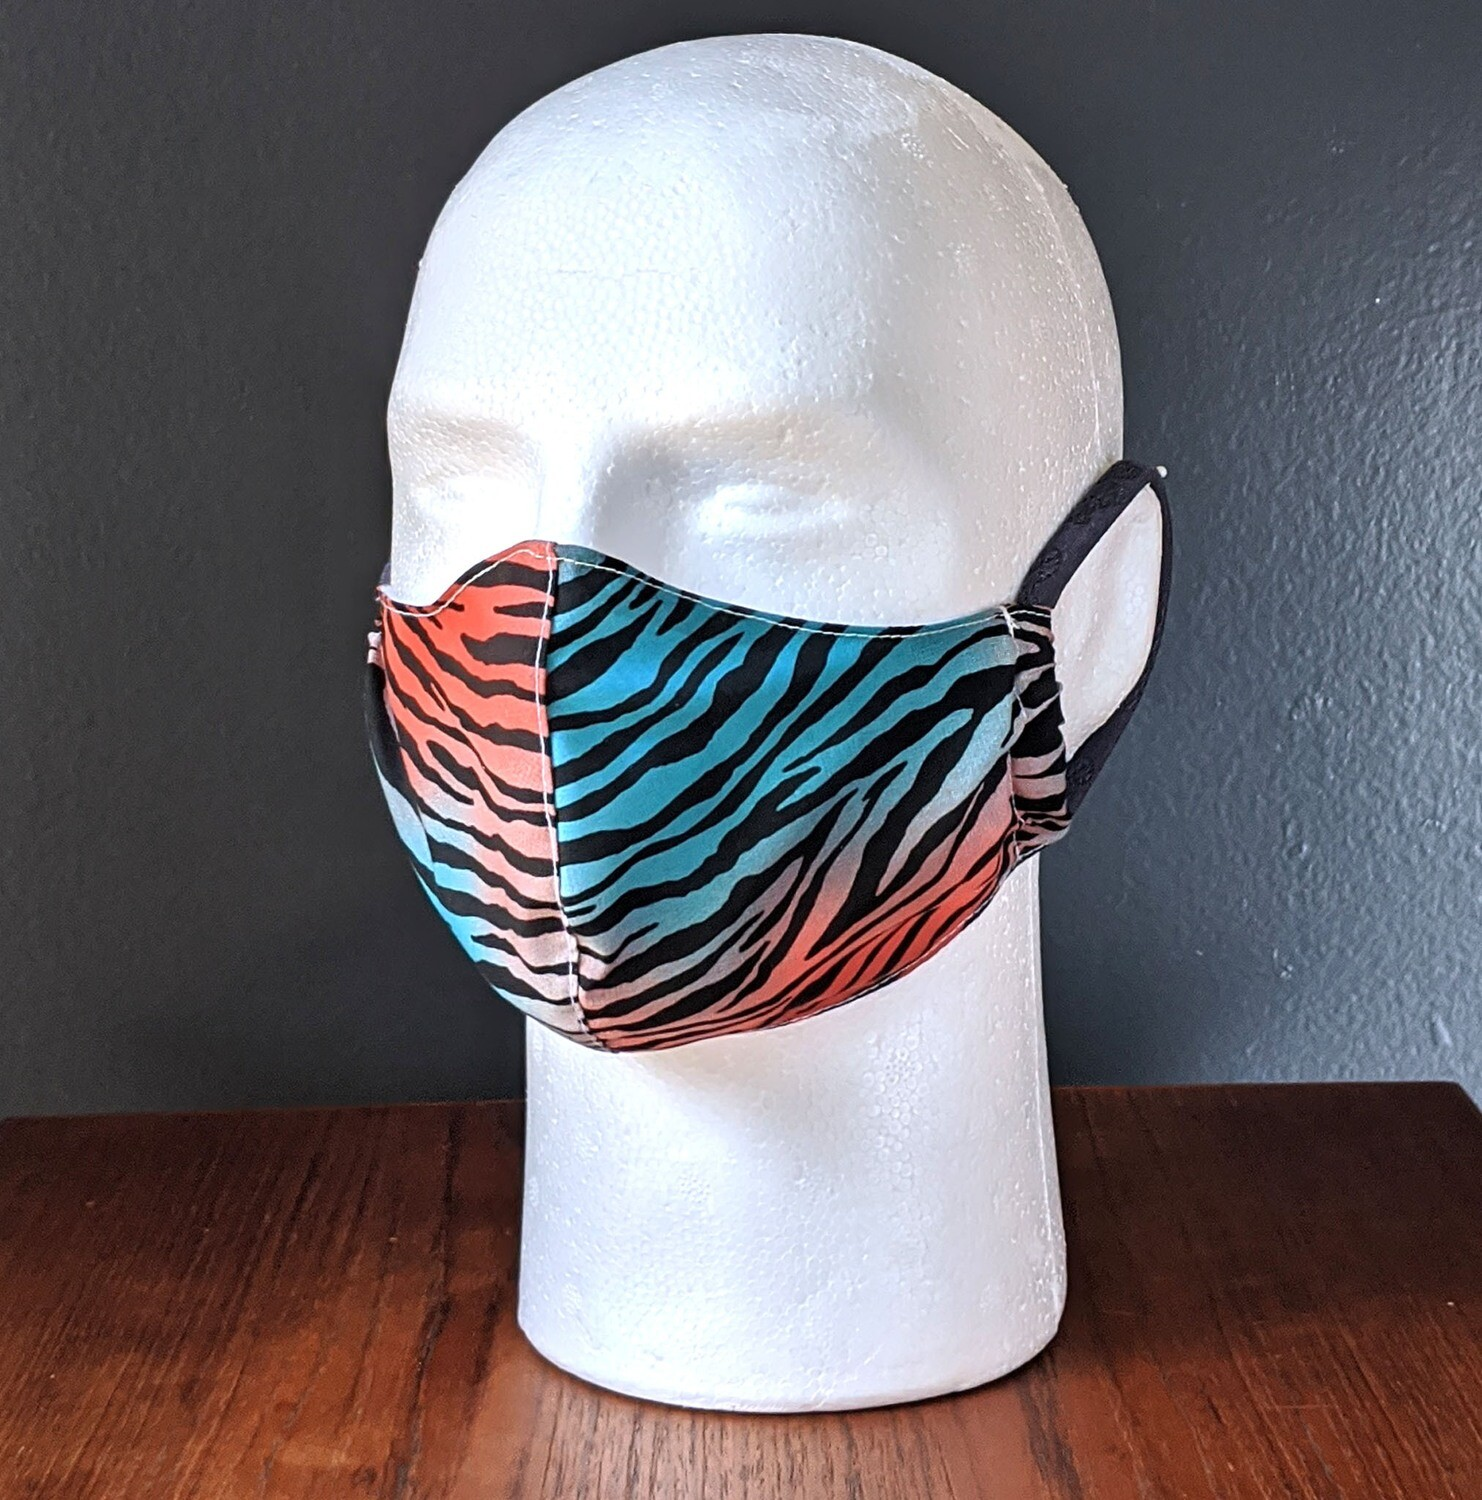 Tiger King Animal Print Face Masks, Small, Unisex, Washable, Reusable, Double Layer for Smog, Pollen, Dust, Smoke. Made in USA